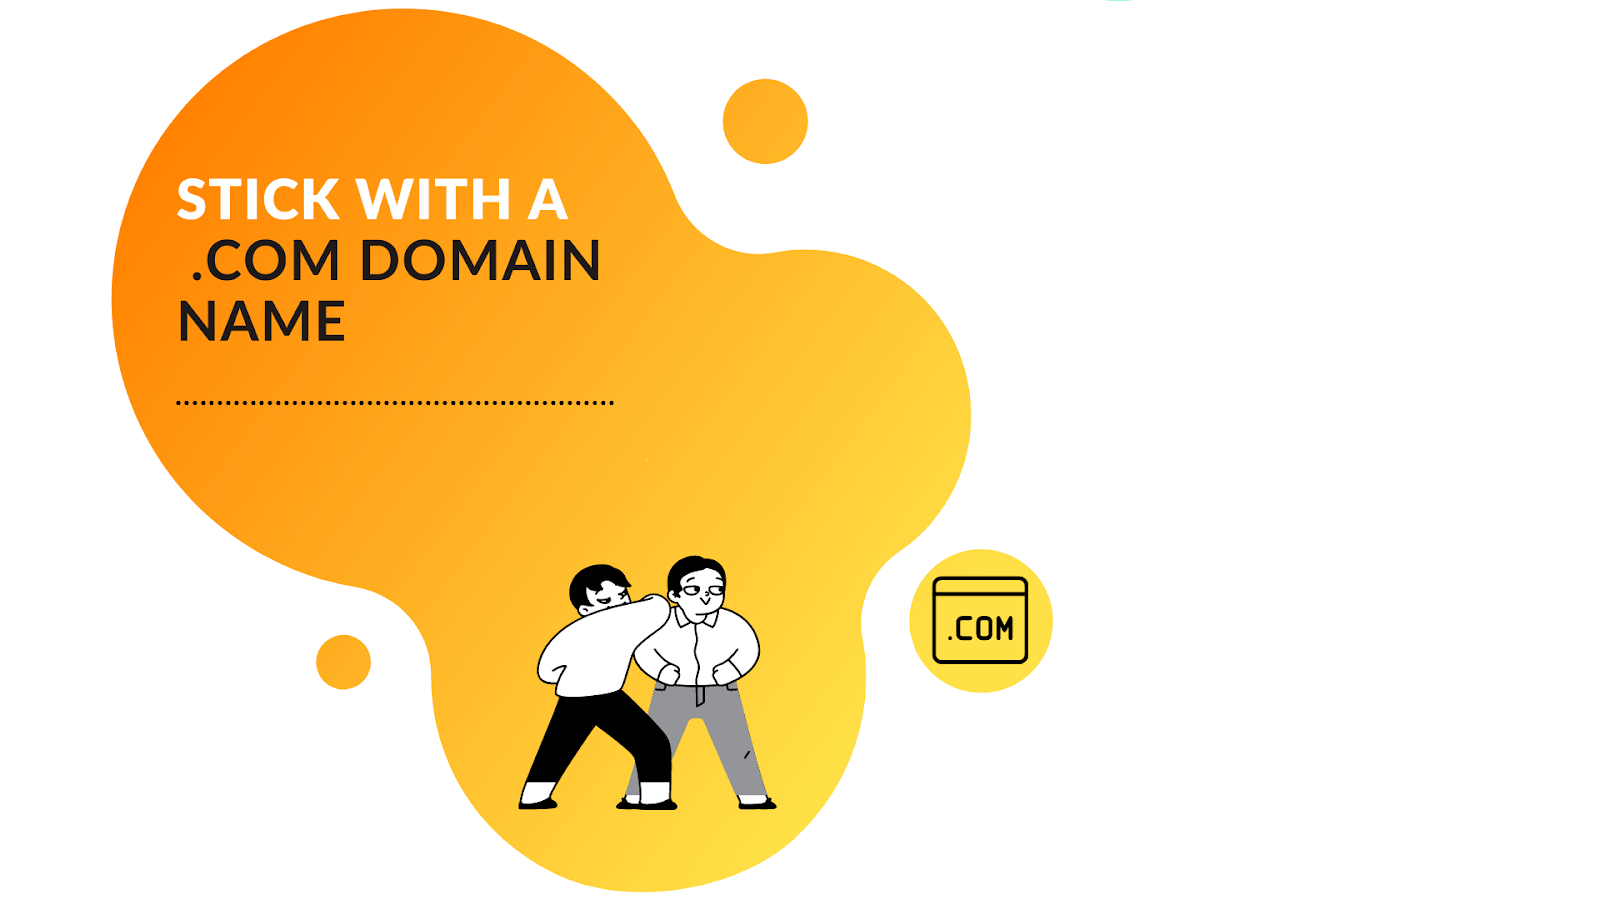 When you can, go for a .com domain name for your business